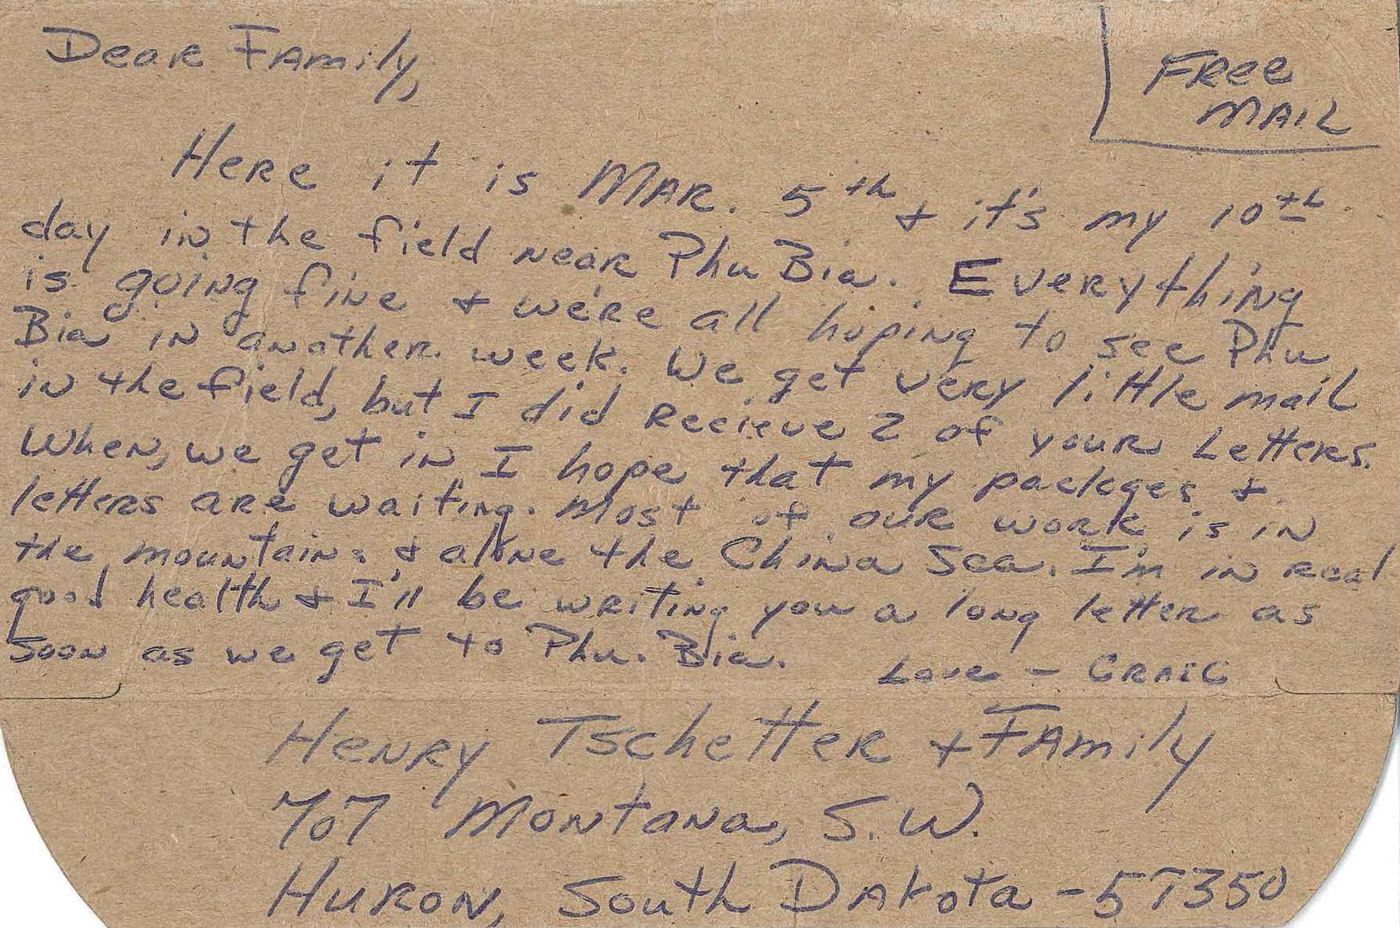 Author's letter home written on C-ration box top